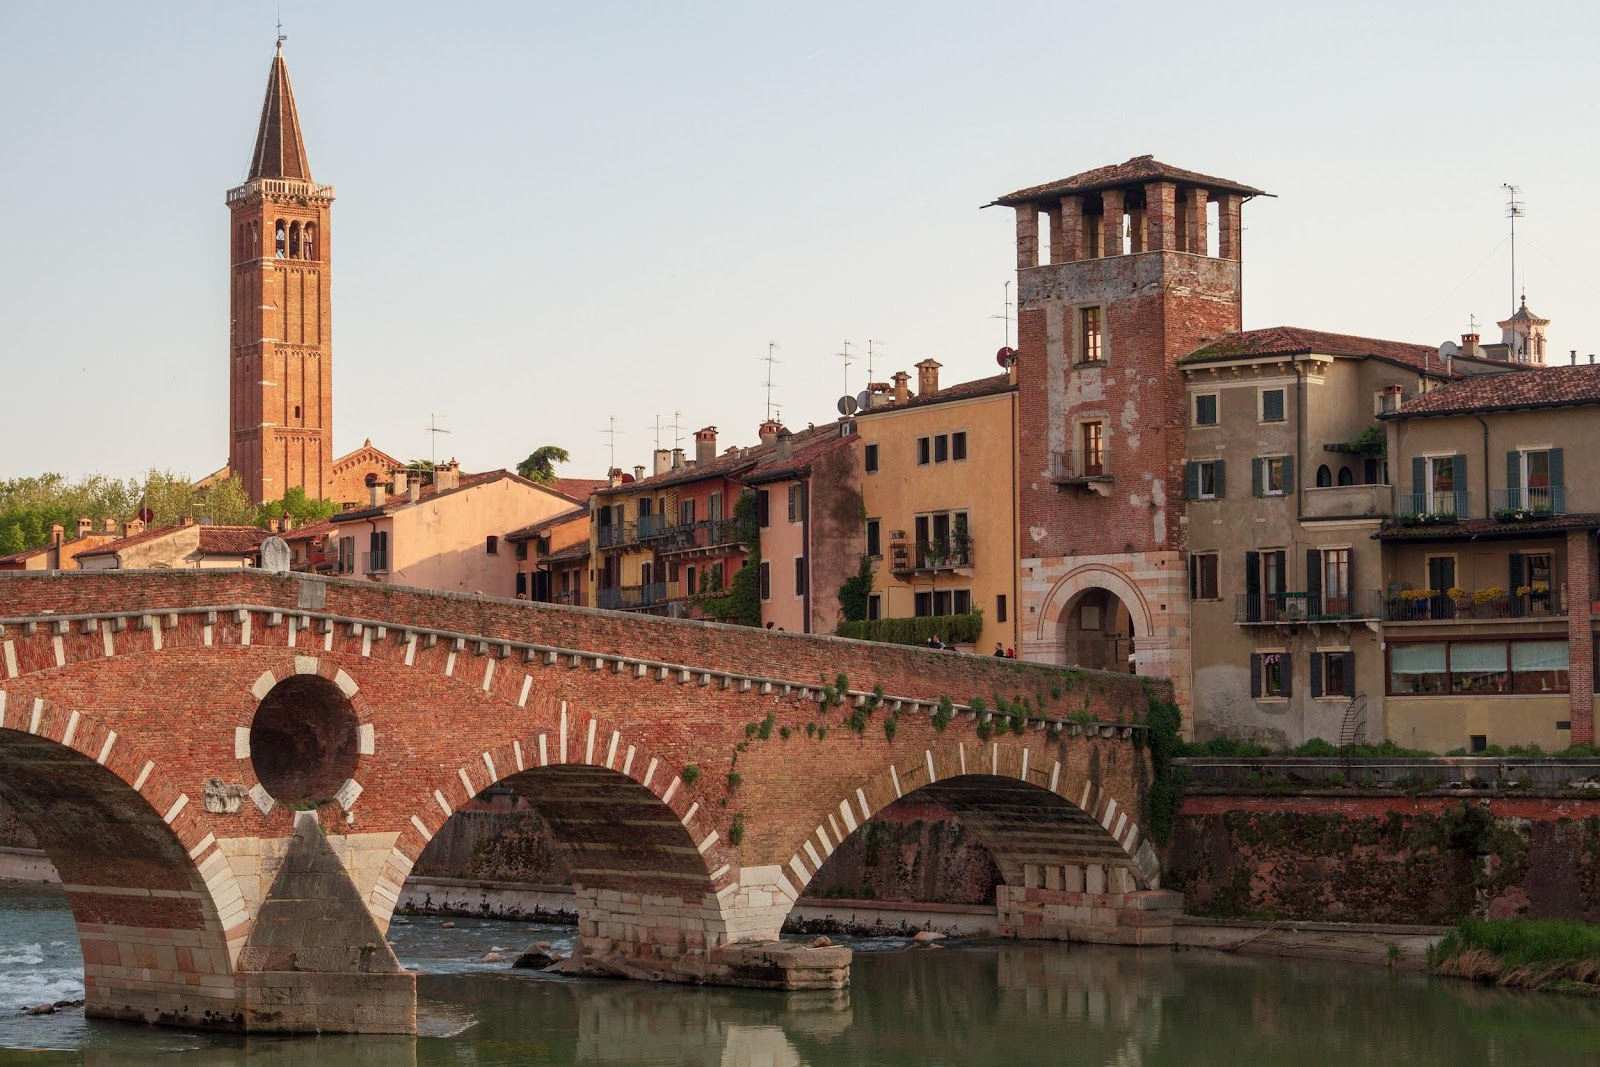 verona traditional historical town medieval stone buildings and bridge over adige river at sunset in italy. See Verona on an italy road trip